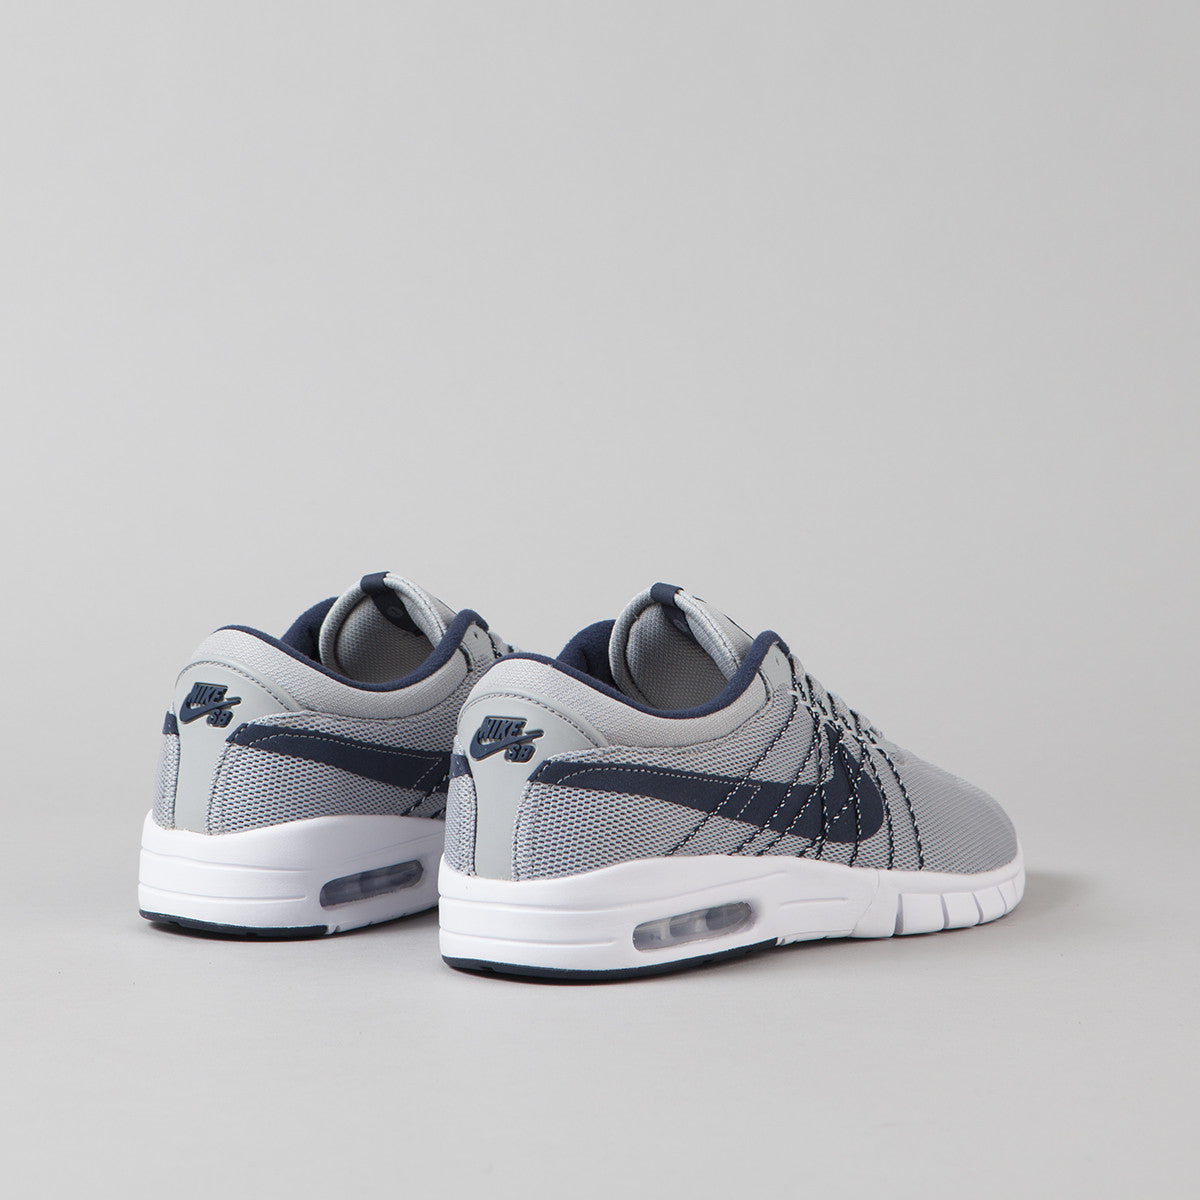 Nike SB Koston Max Shoes - Wolf Grey / Obsidian - White